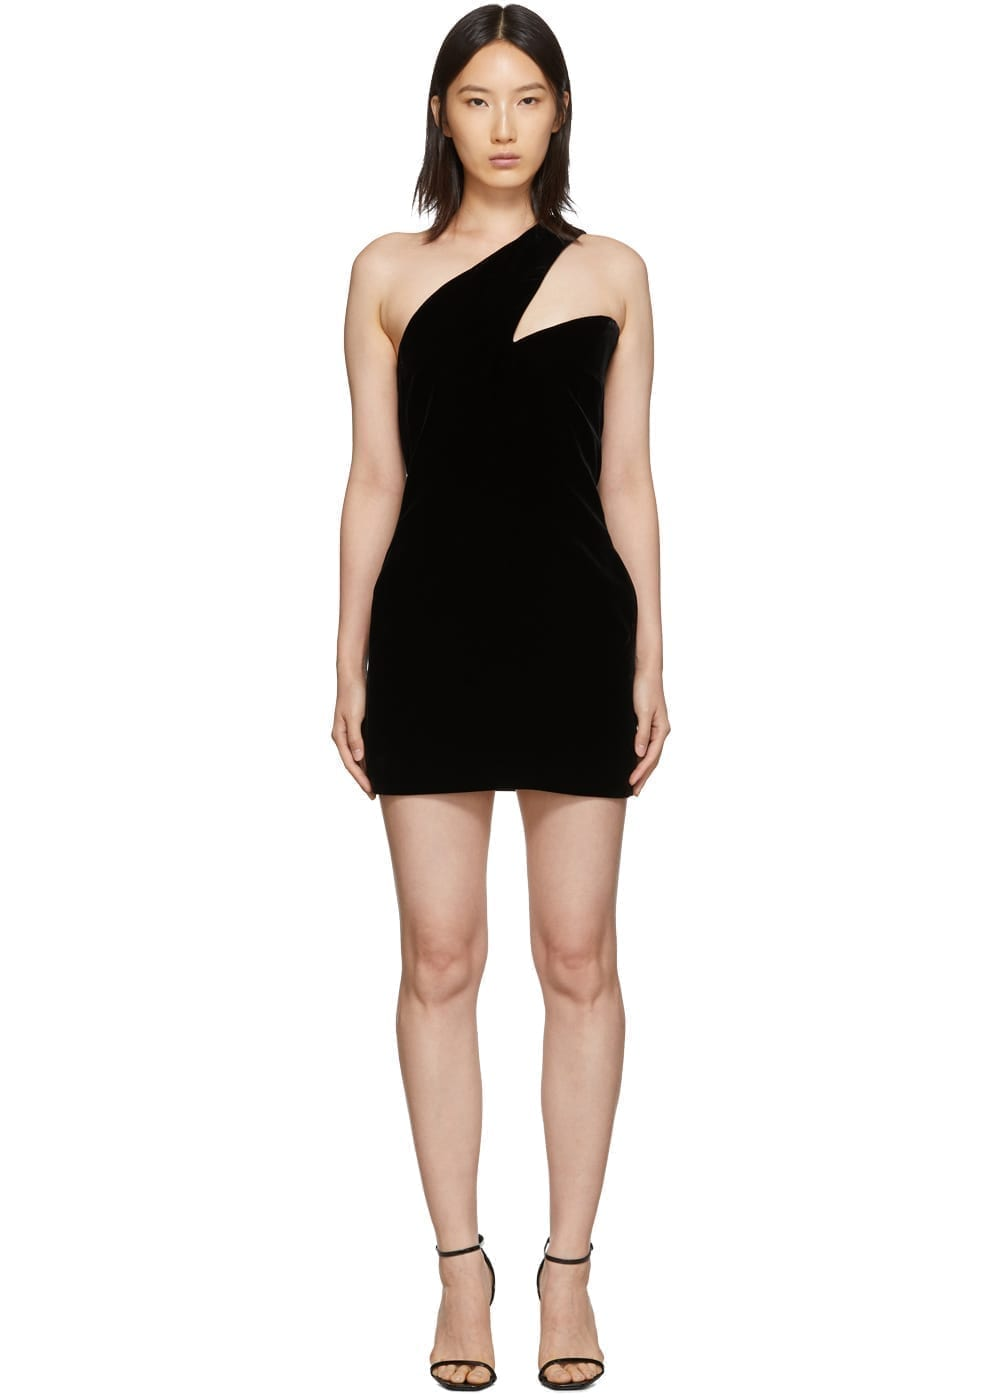 SAINT LAURENT Black One-Shoulder Velvet Short Dress